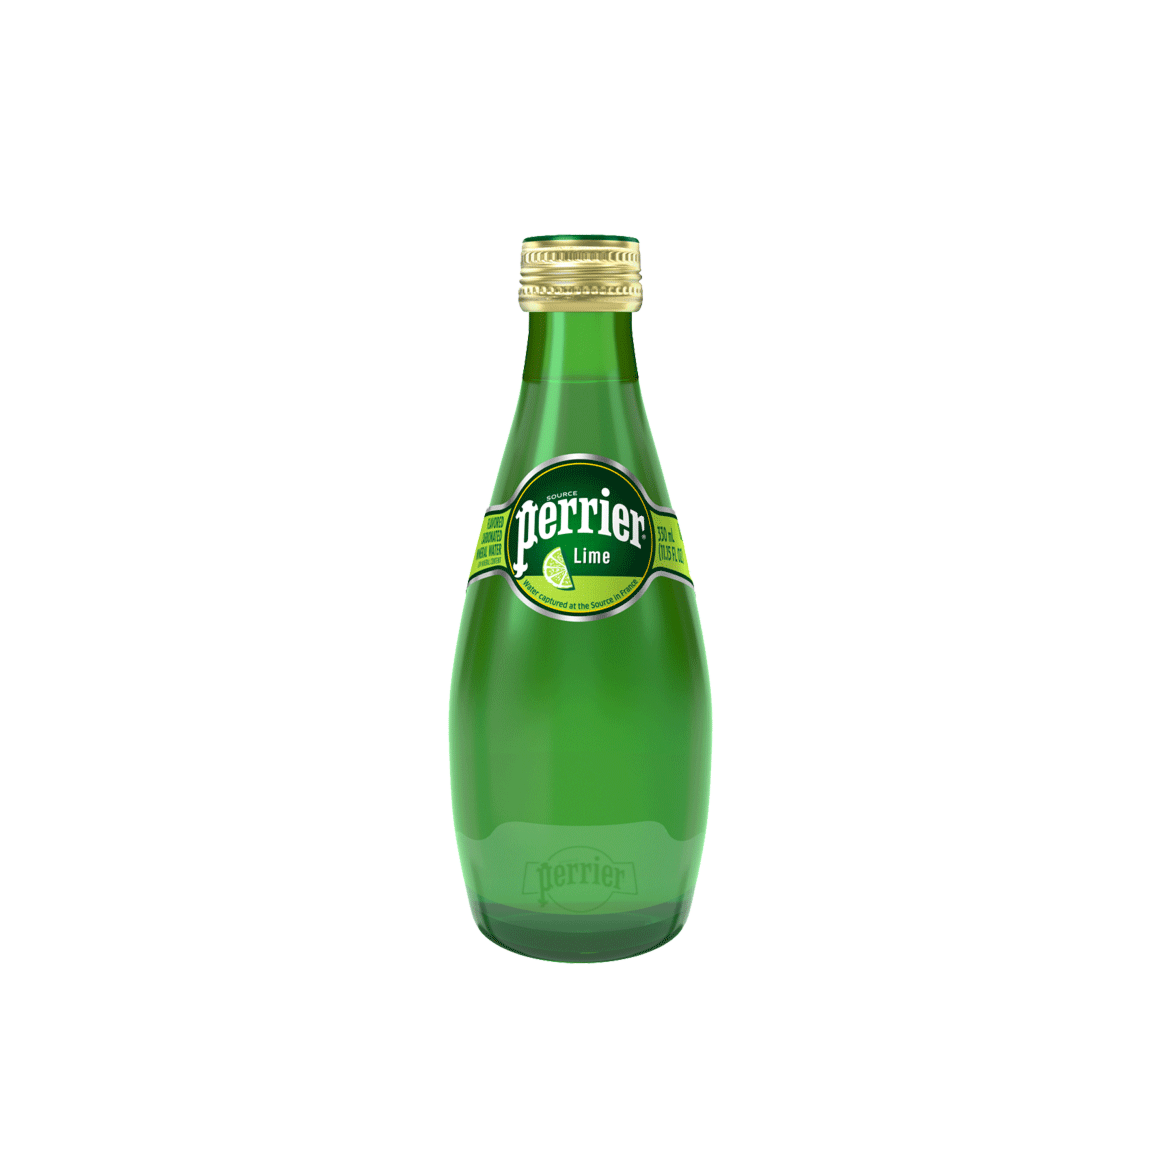 Perrier® Carbonated Mineral Water - Lime Image2